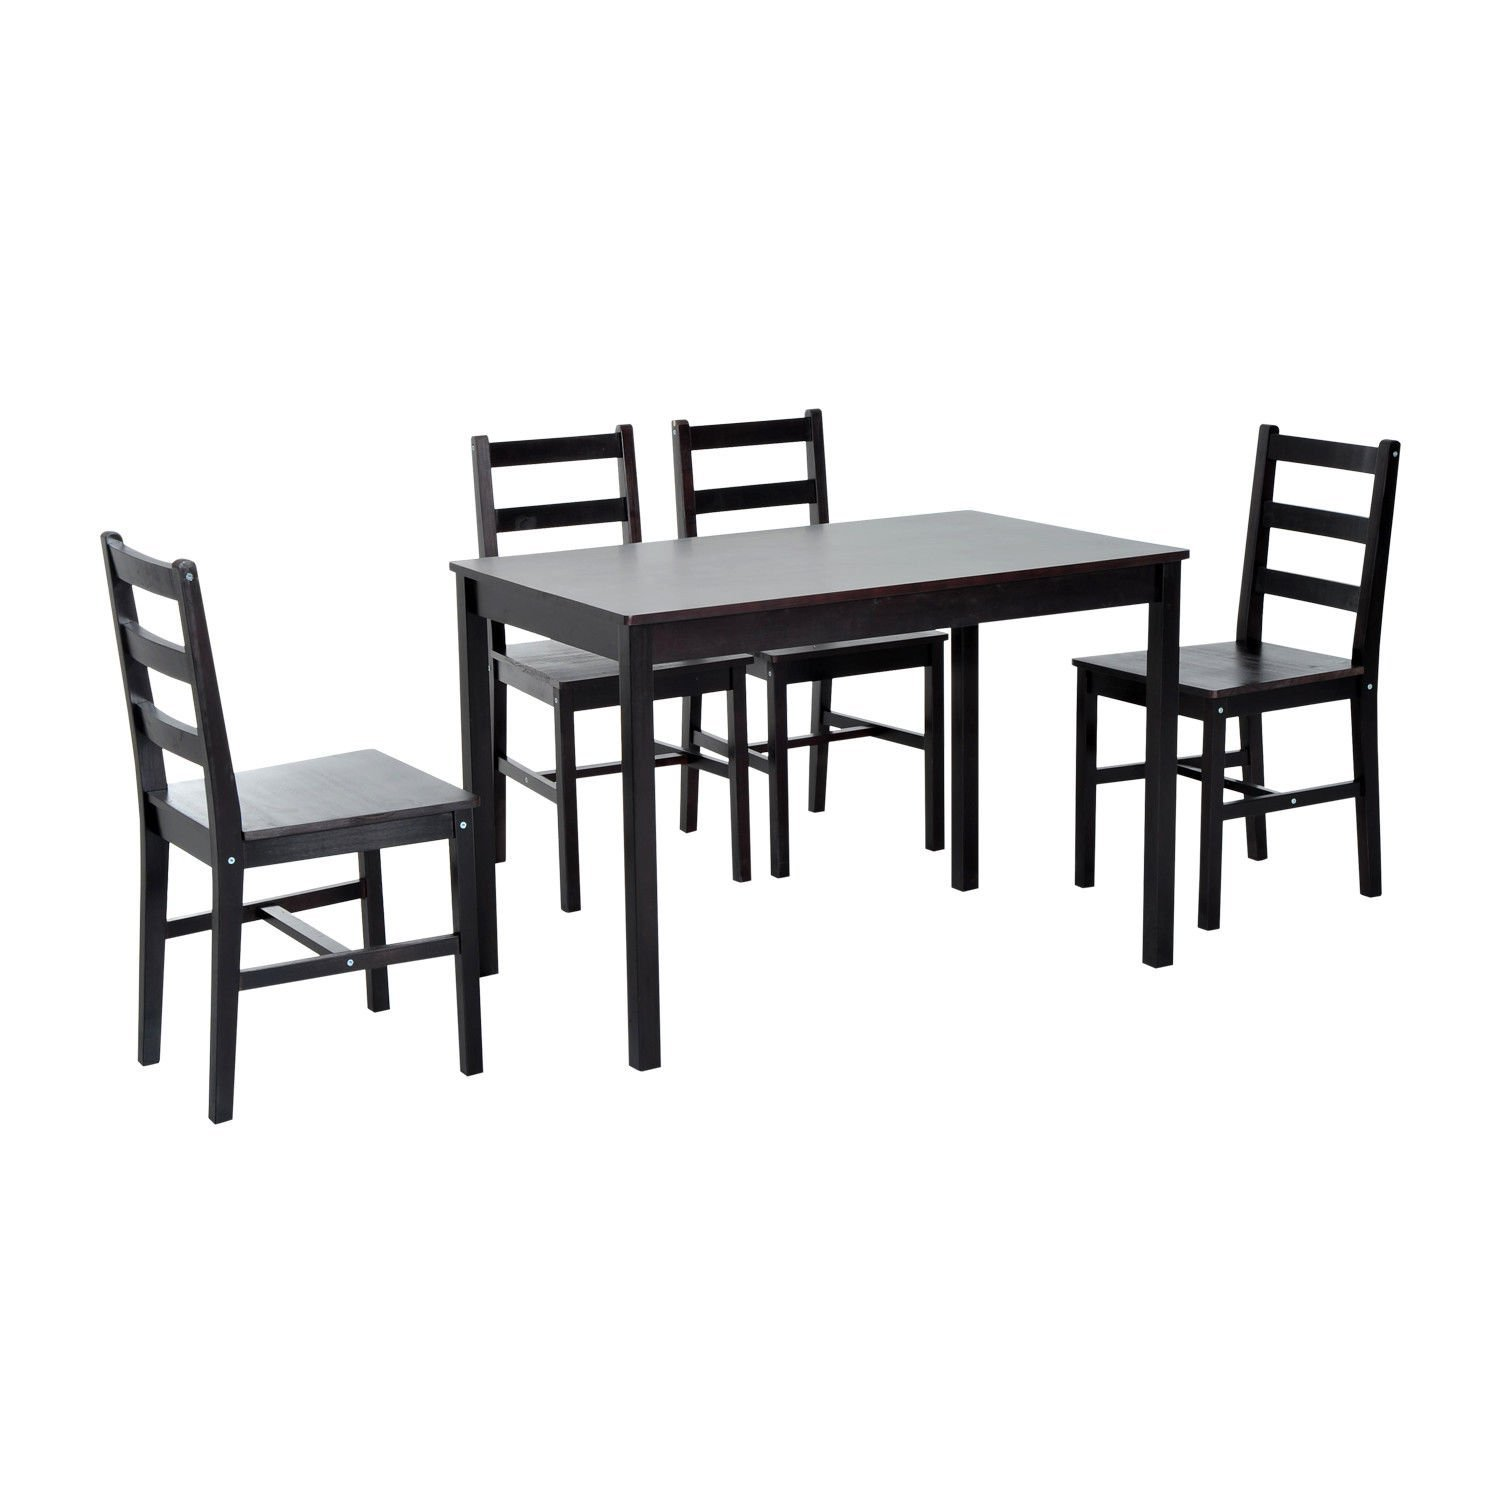 Globe House Products GHP Home/Office Dark Brown 5-Pcs Durable Solid Pine Wood Dining Table & Chairs Set